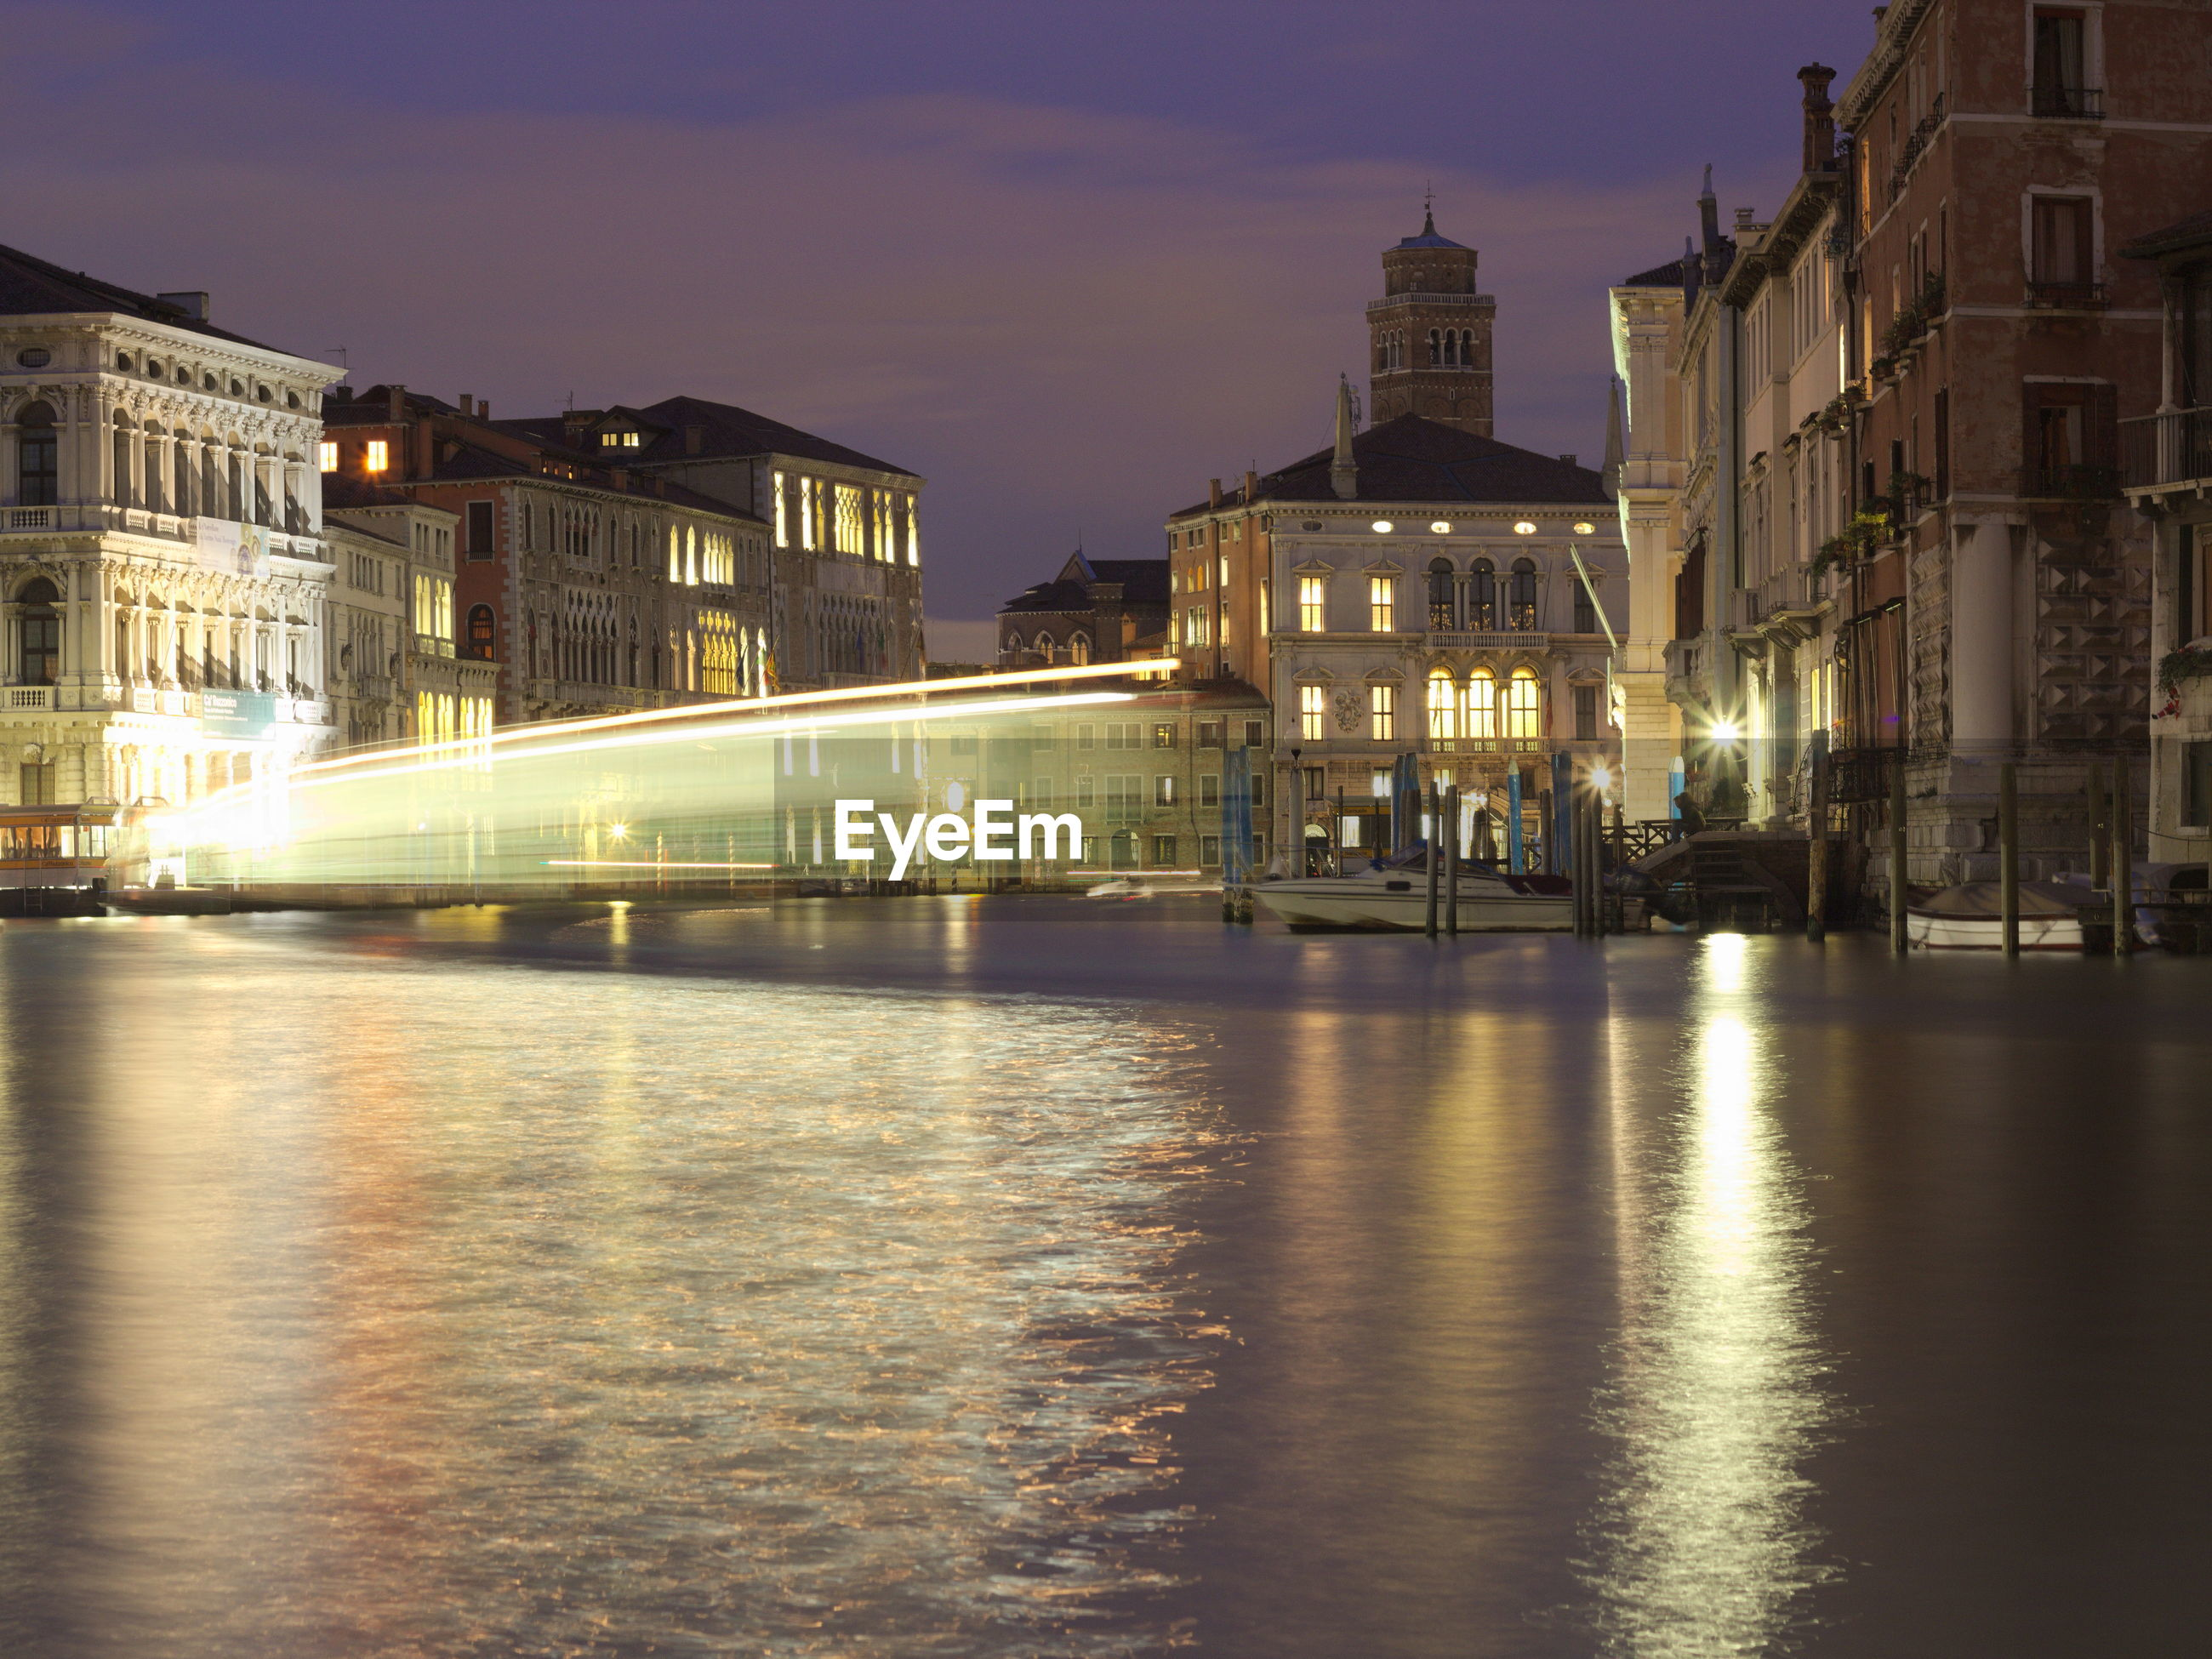 Light trail on river by illuminated buildings against sky at night